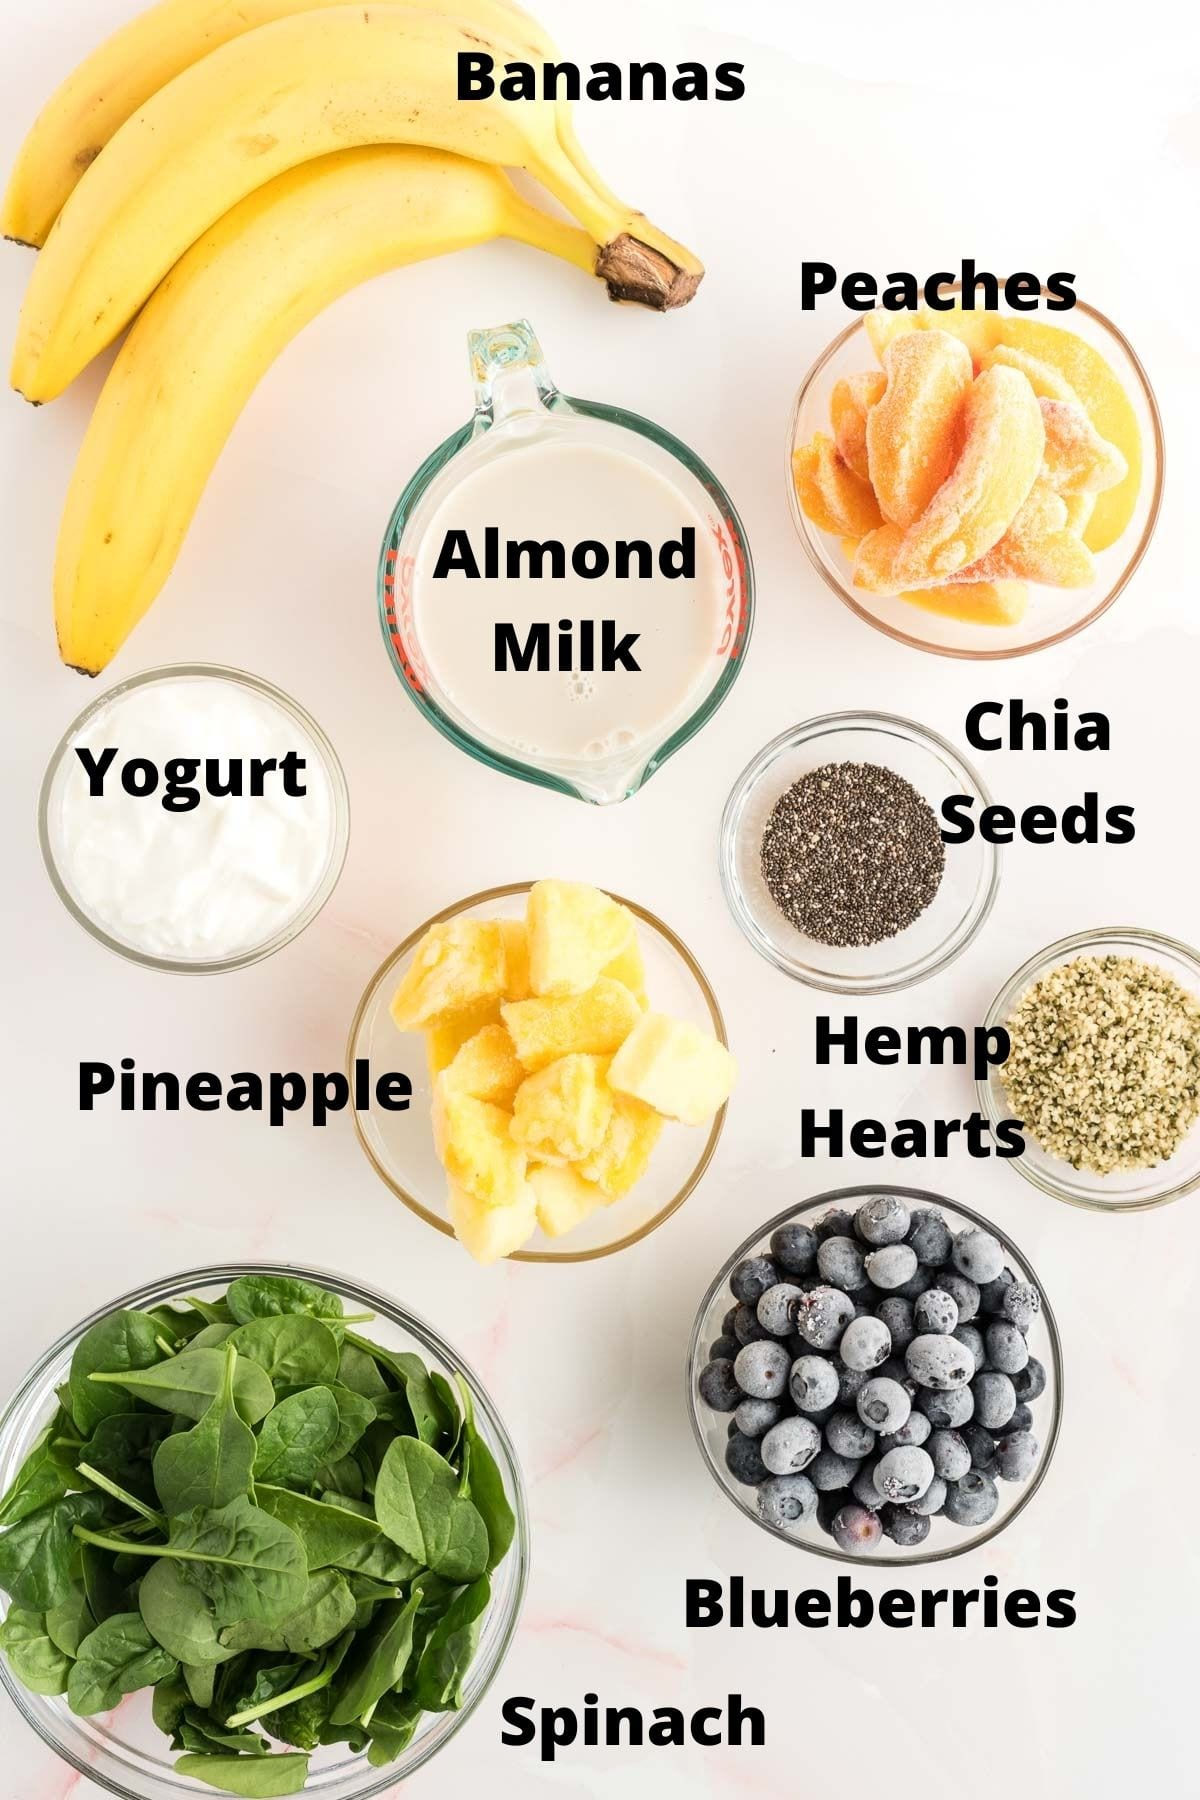 Ingredients for making fruit smoothies.